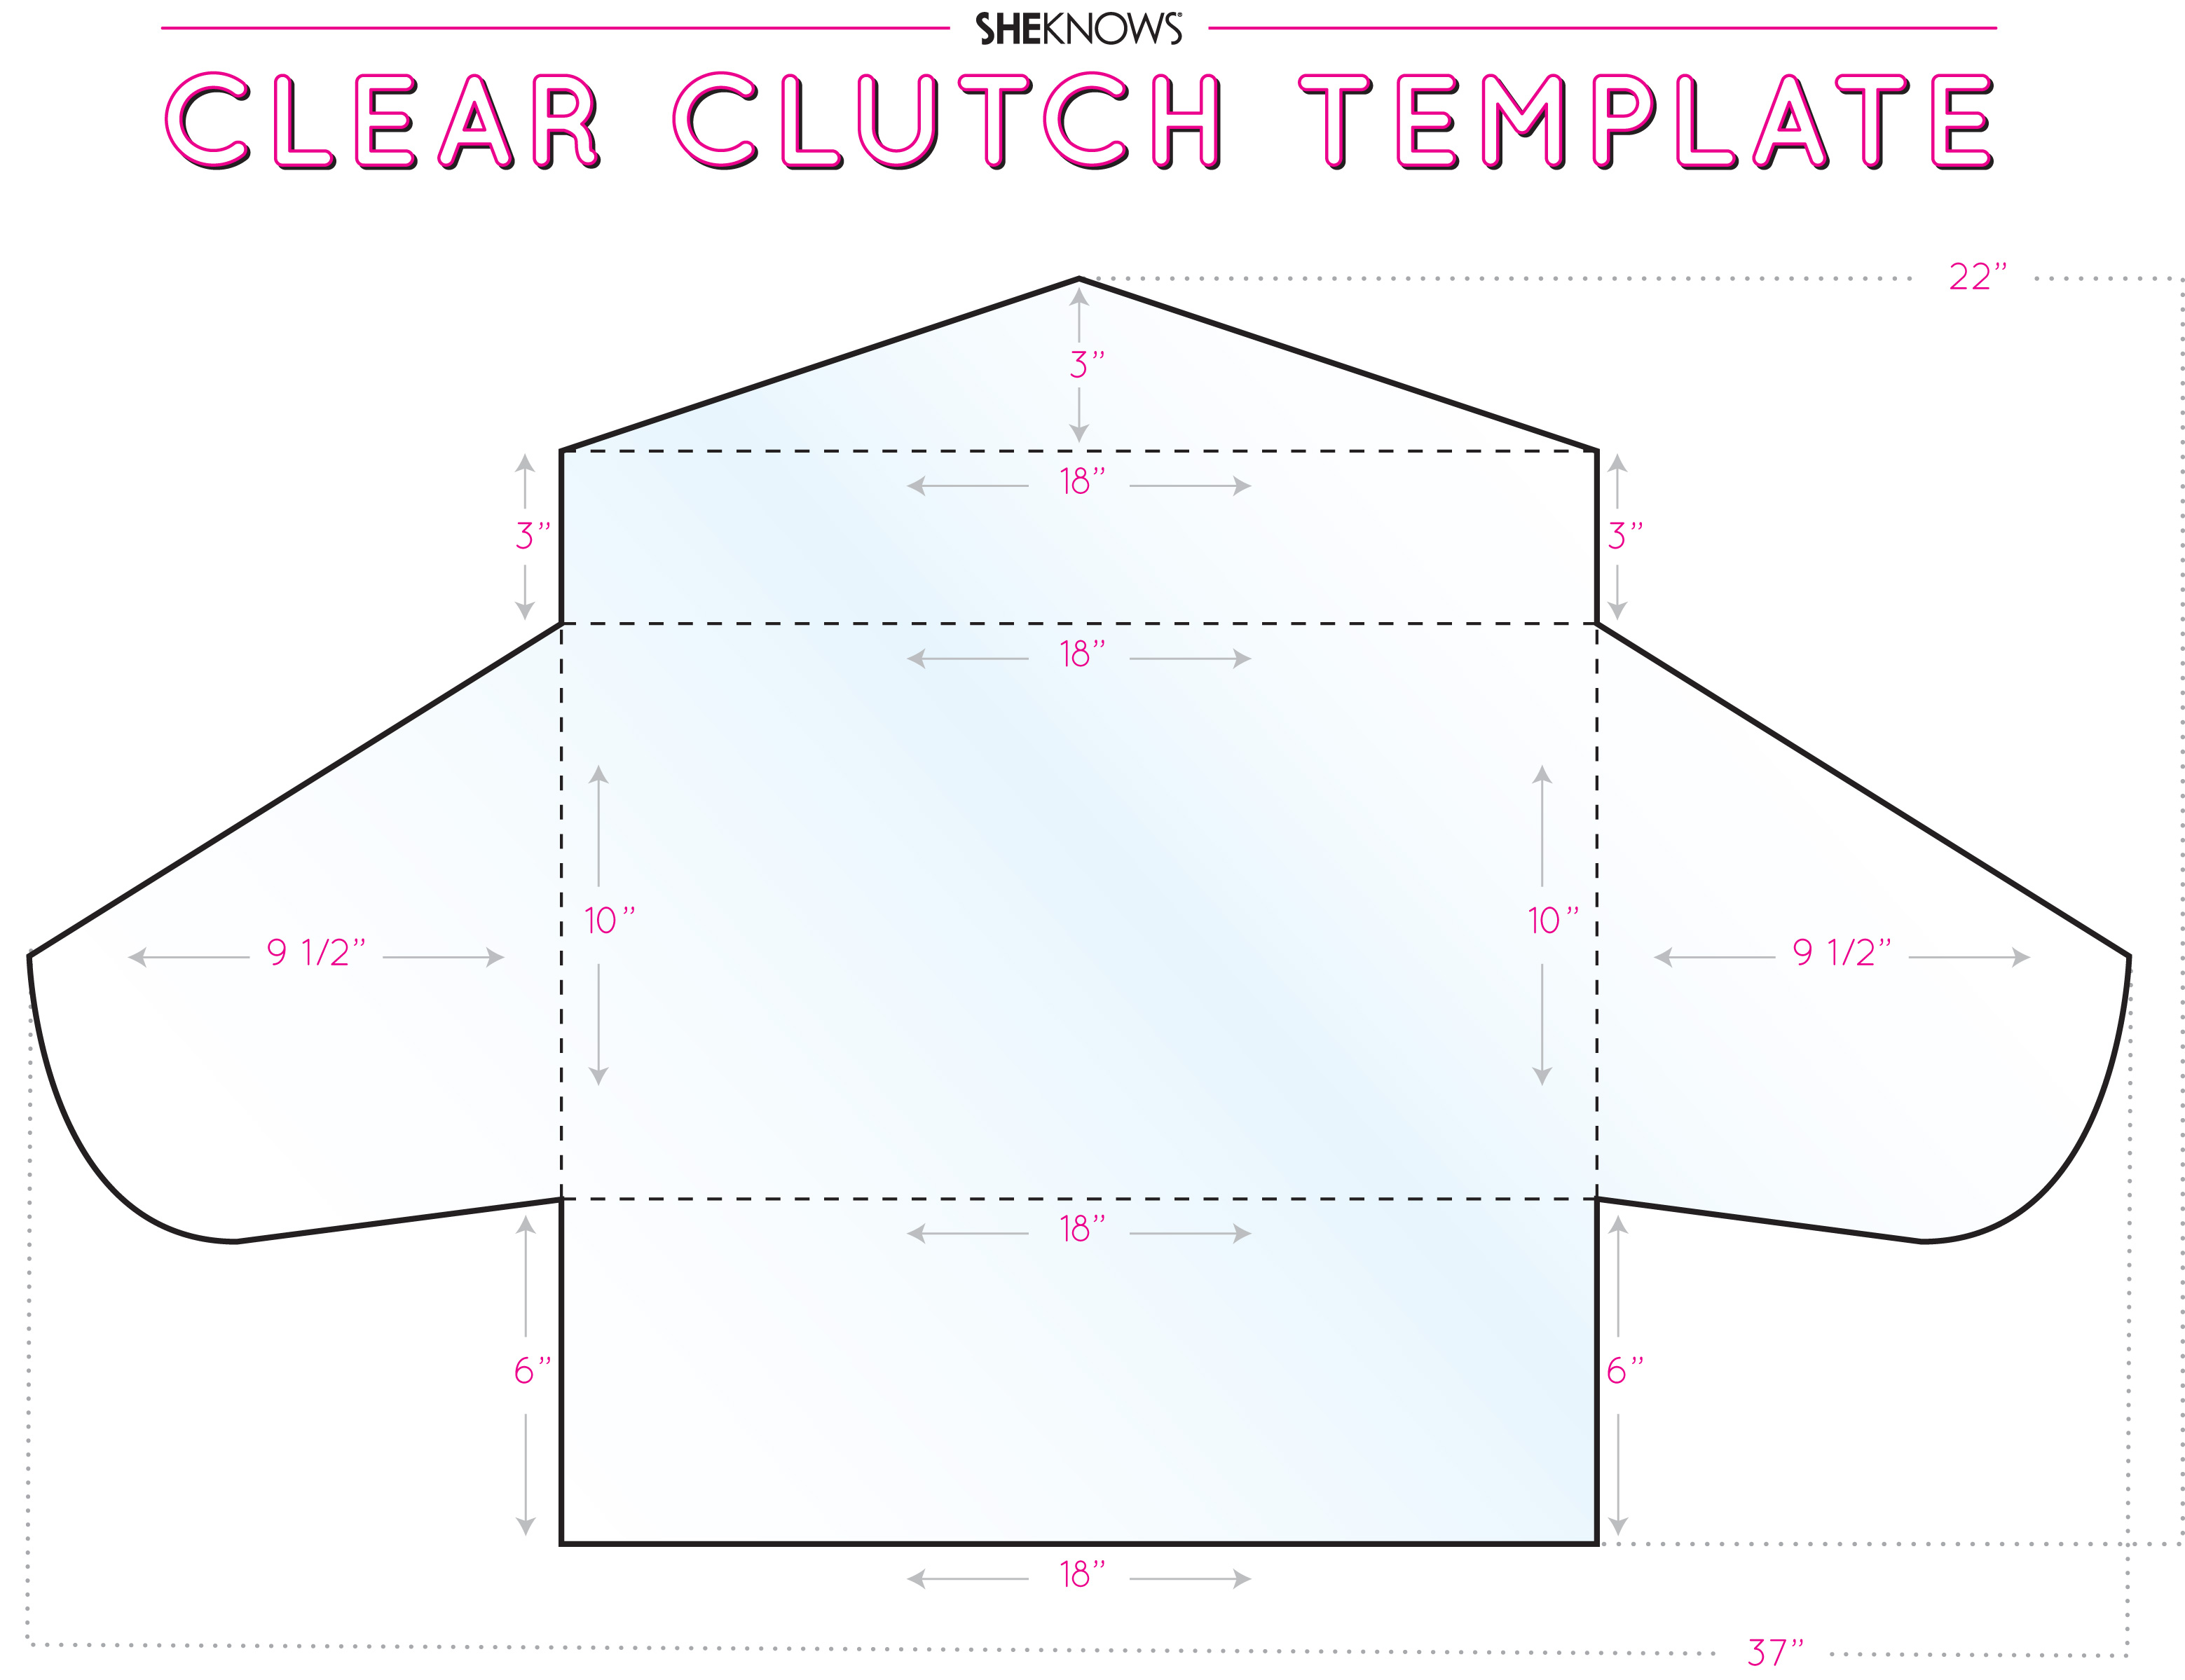 Clear vinyl clutch template